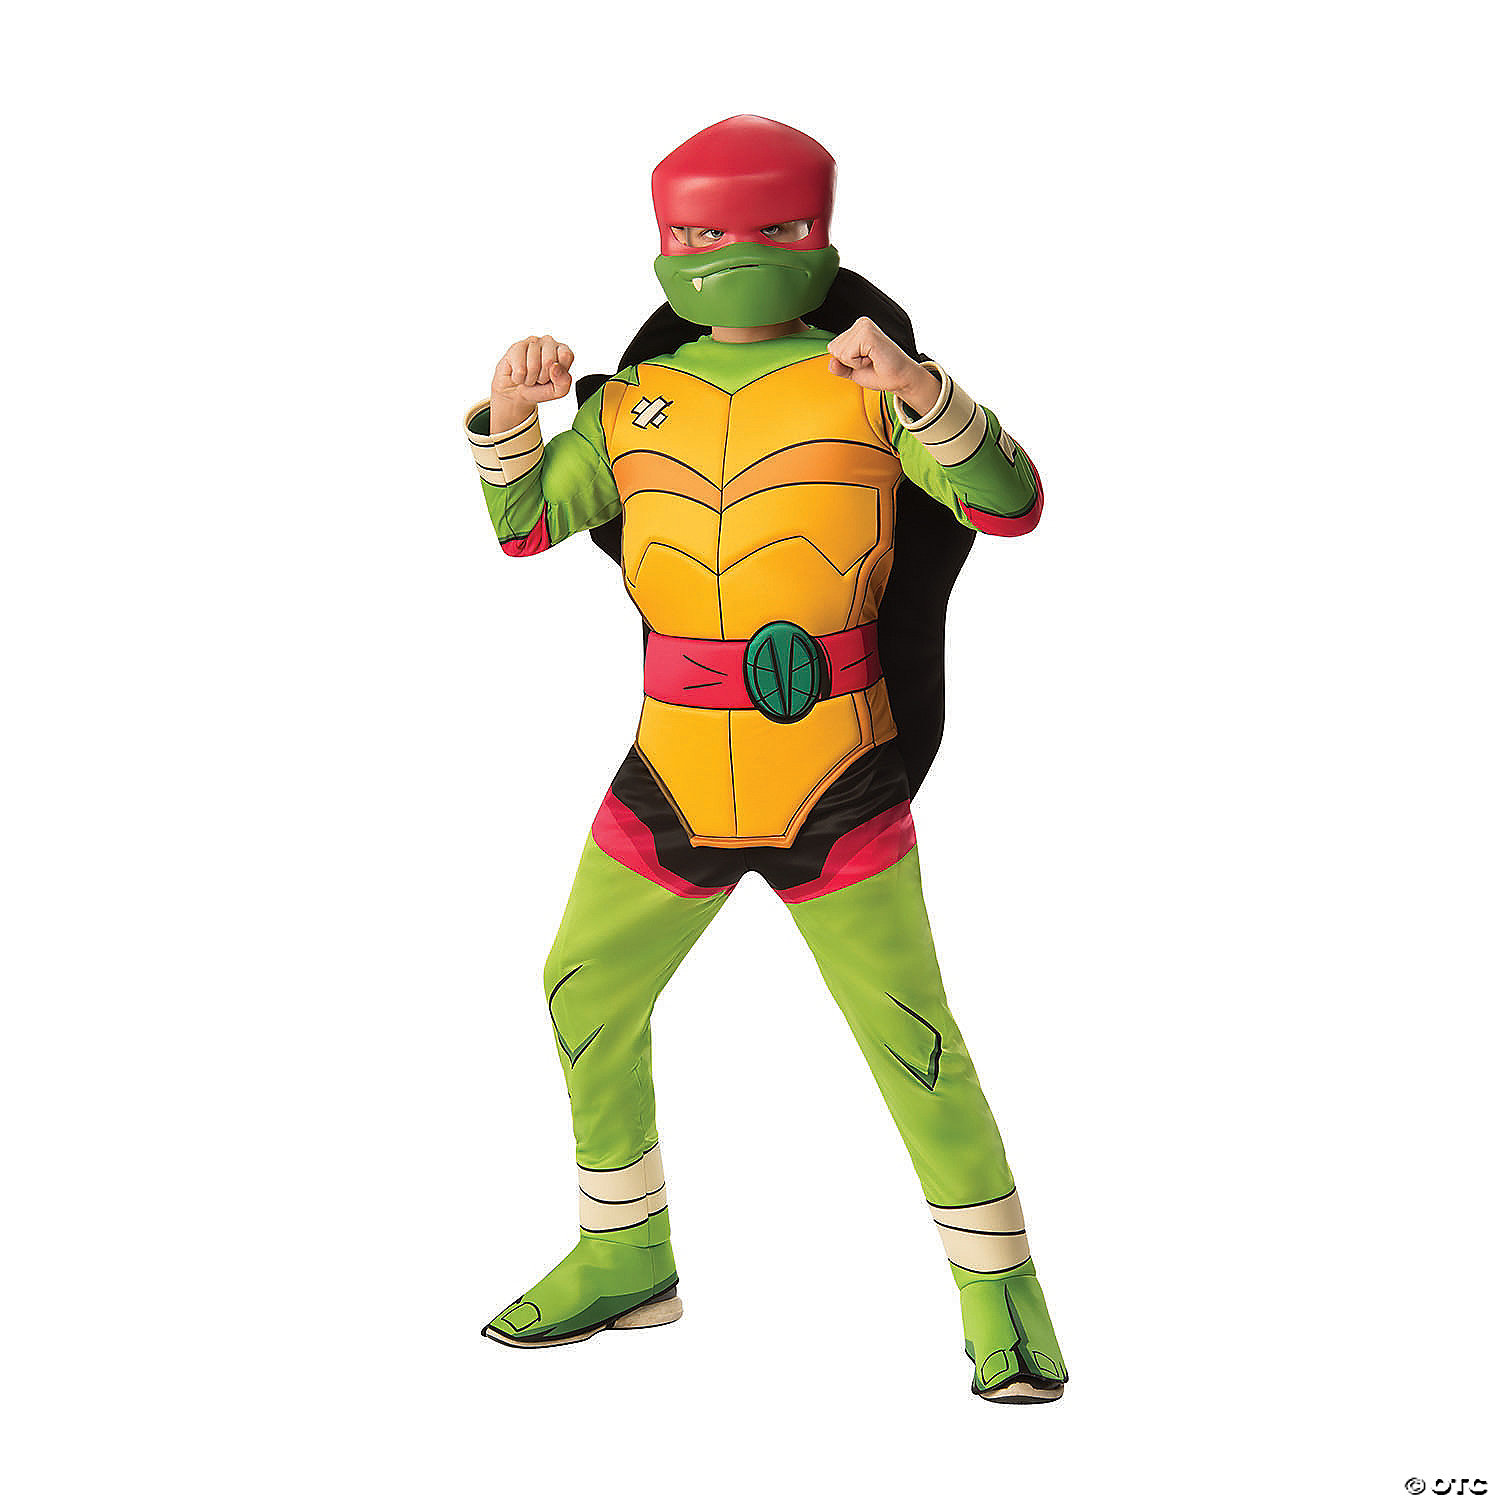 Halloween Costumes 2020 Rise Of The Turtles Boy's Rise of the Teenage Mutant Ninja Turtles™ Deluxe Raphael